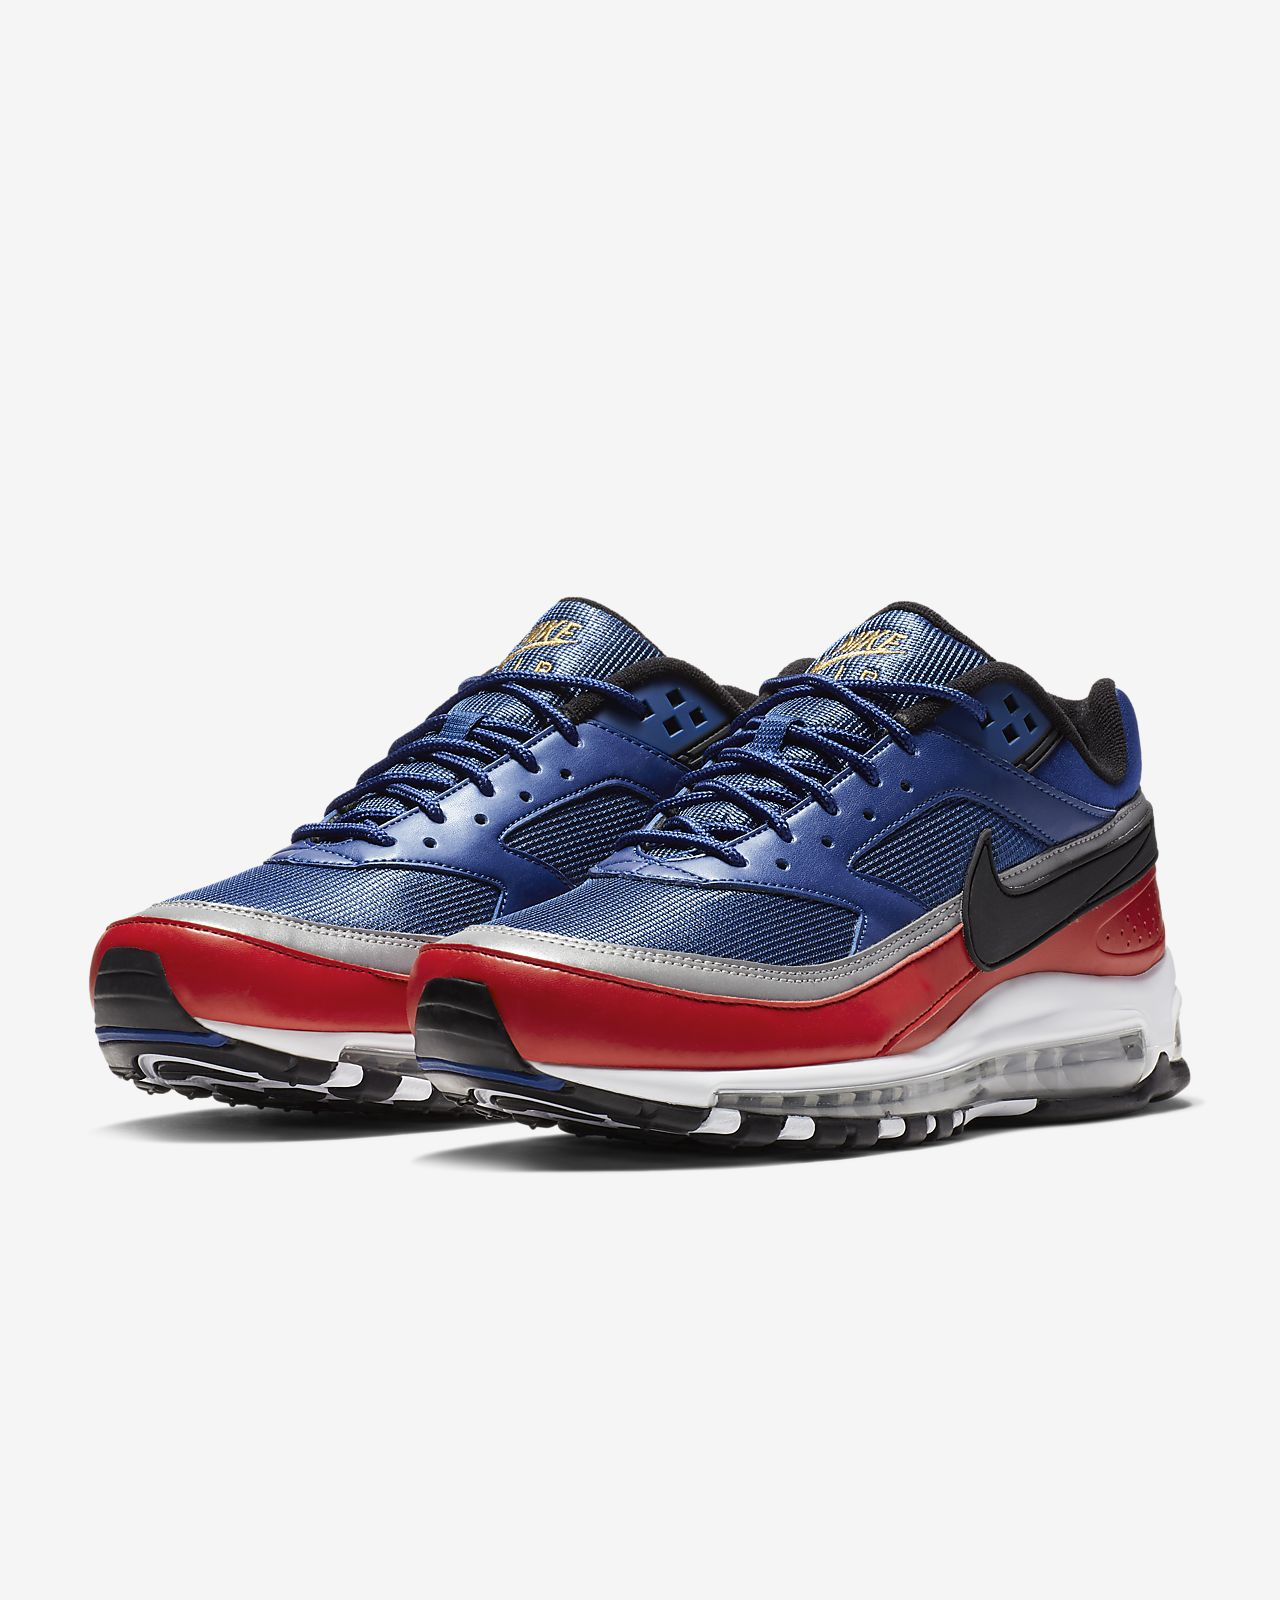 Chaussure Nike Air Max 97BW pour Homme